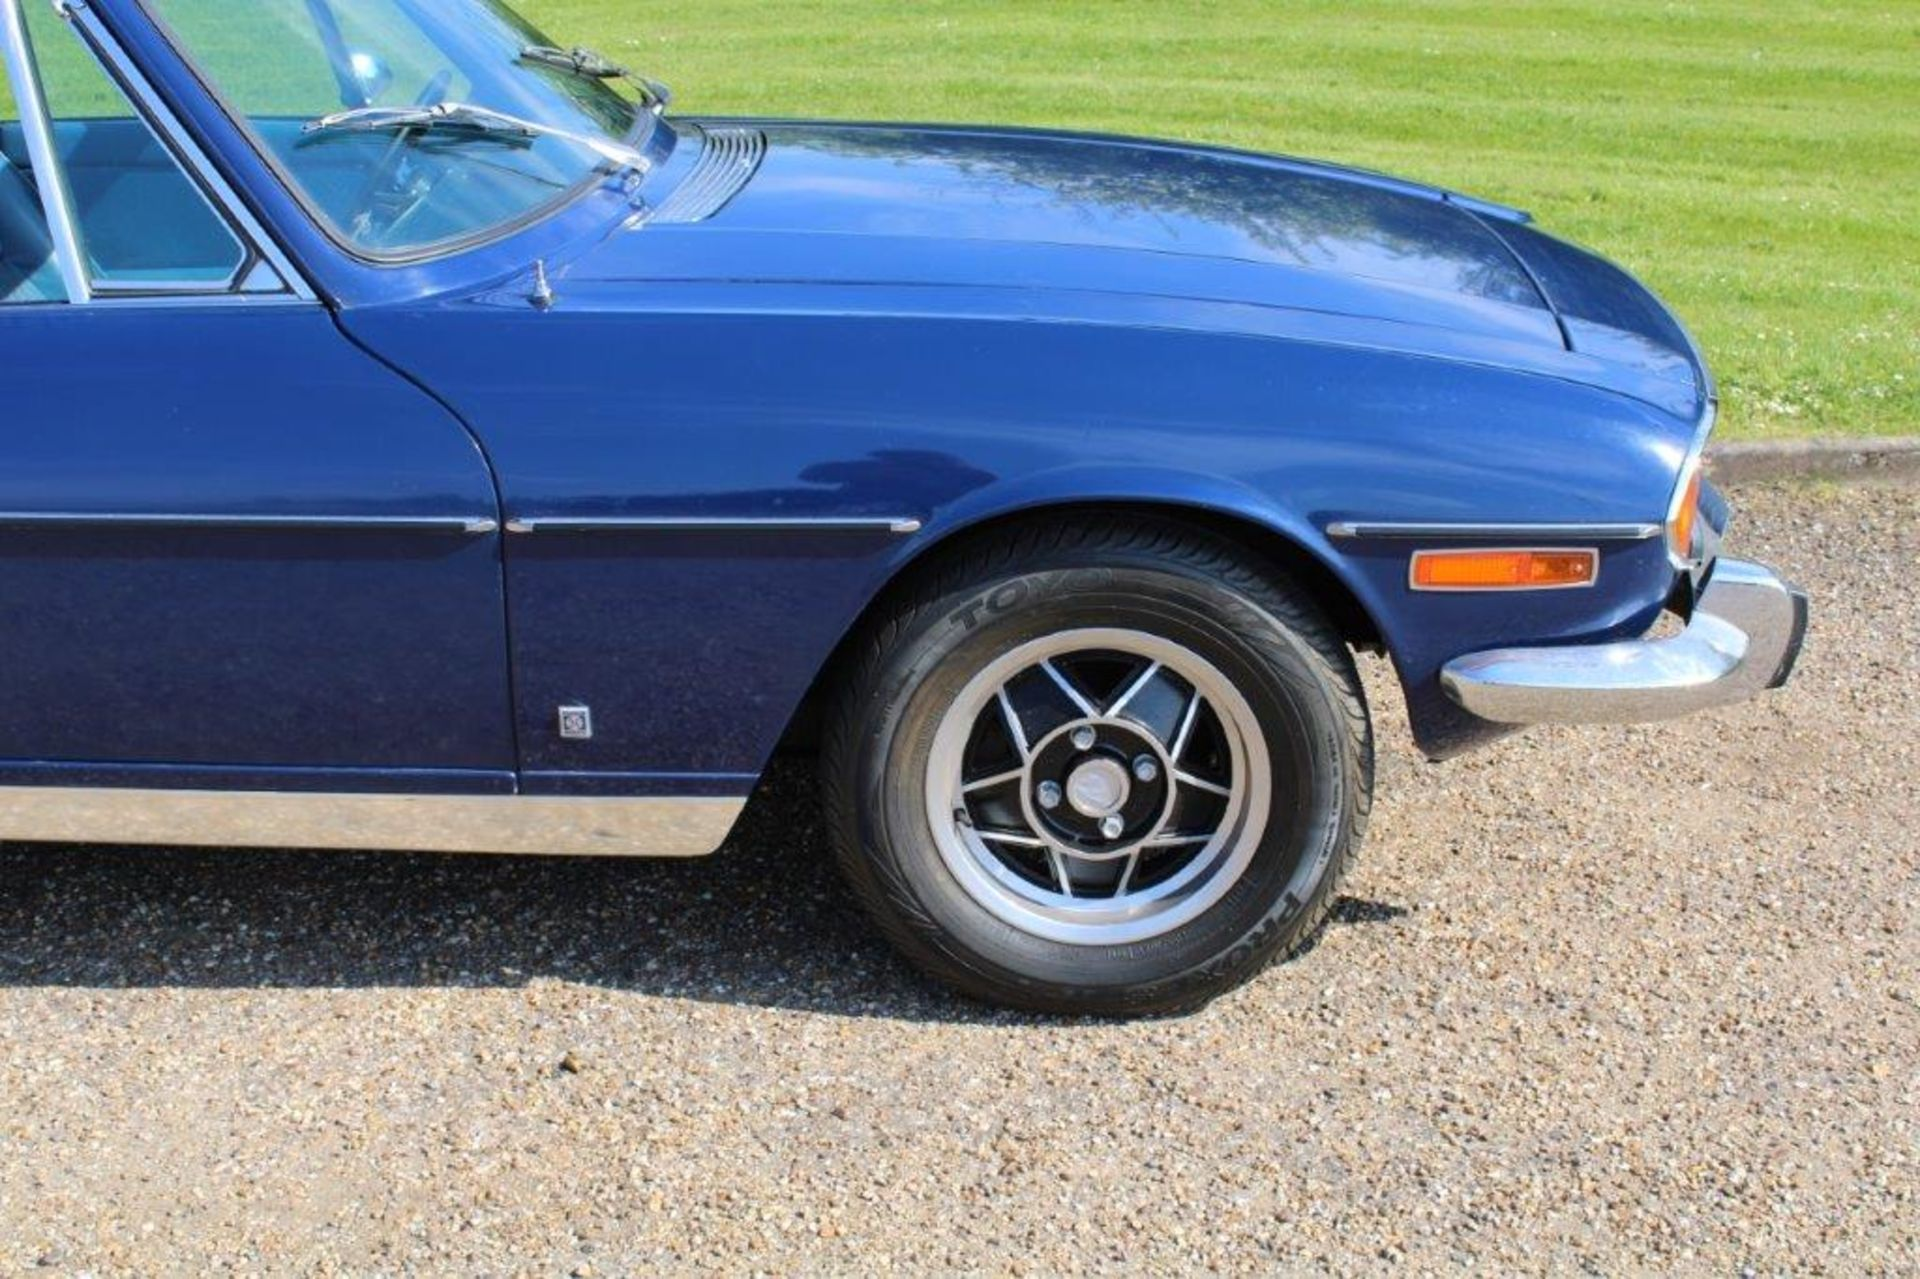 1973 Triumph Stag 3.0 LHD - Image 12 of 28